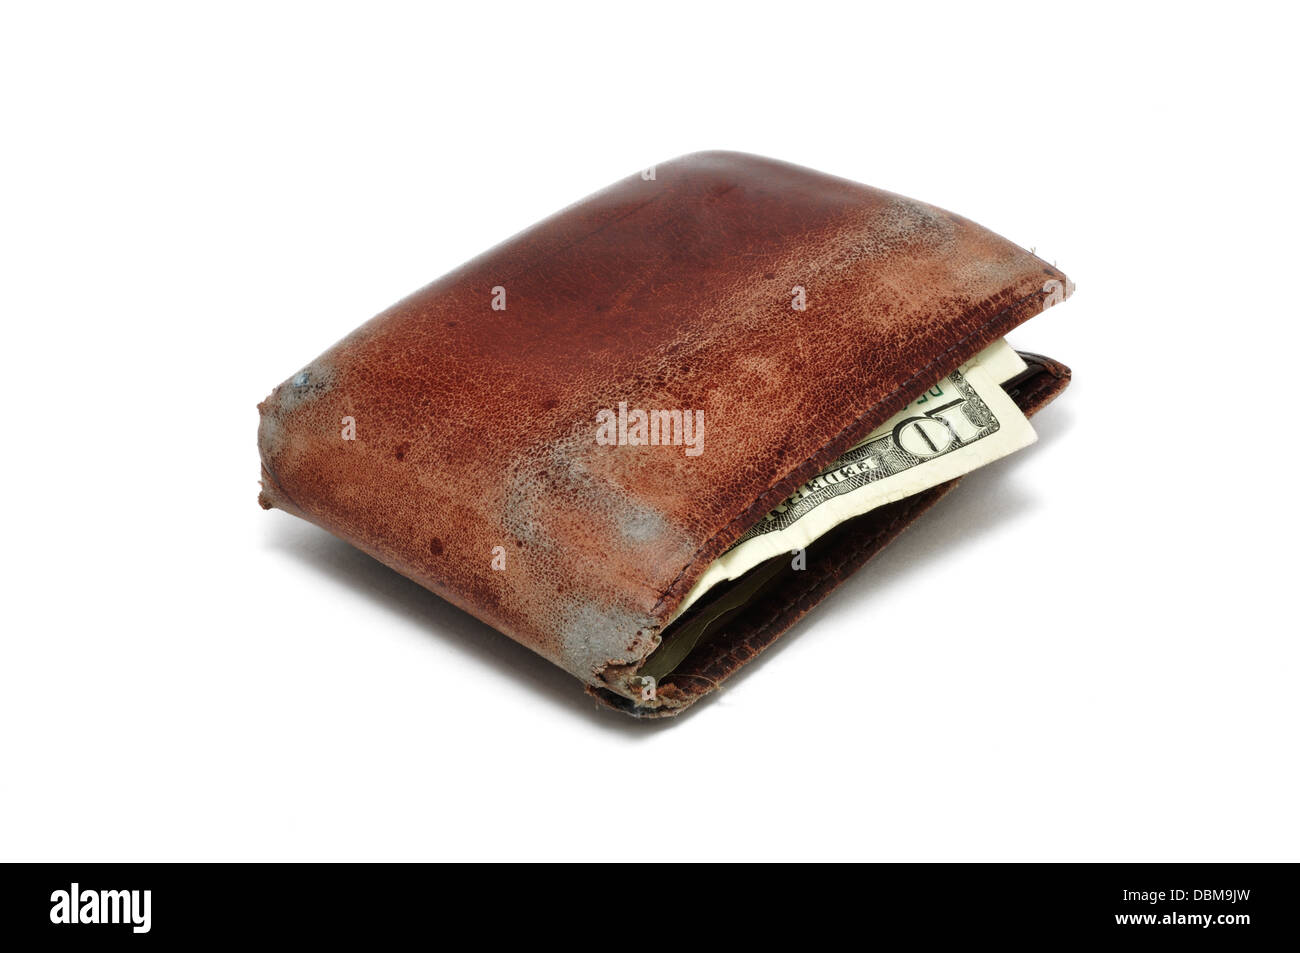 Old wallet with 10 dollar bill - Stock Image